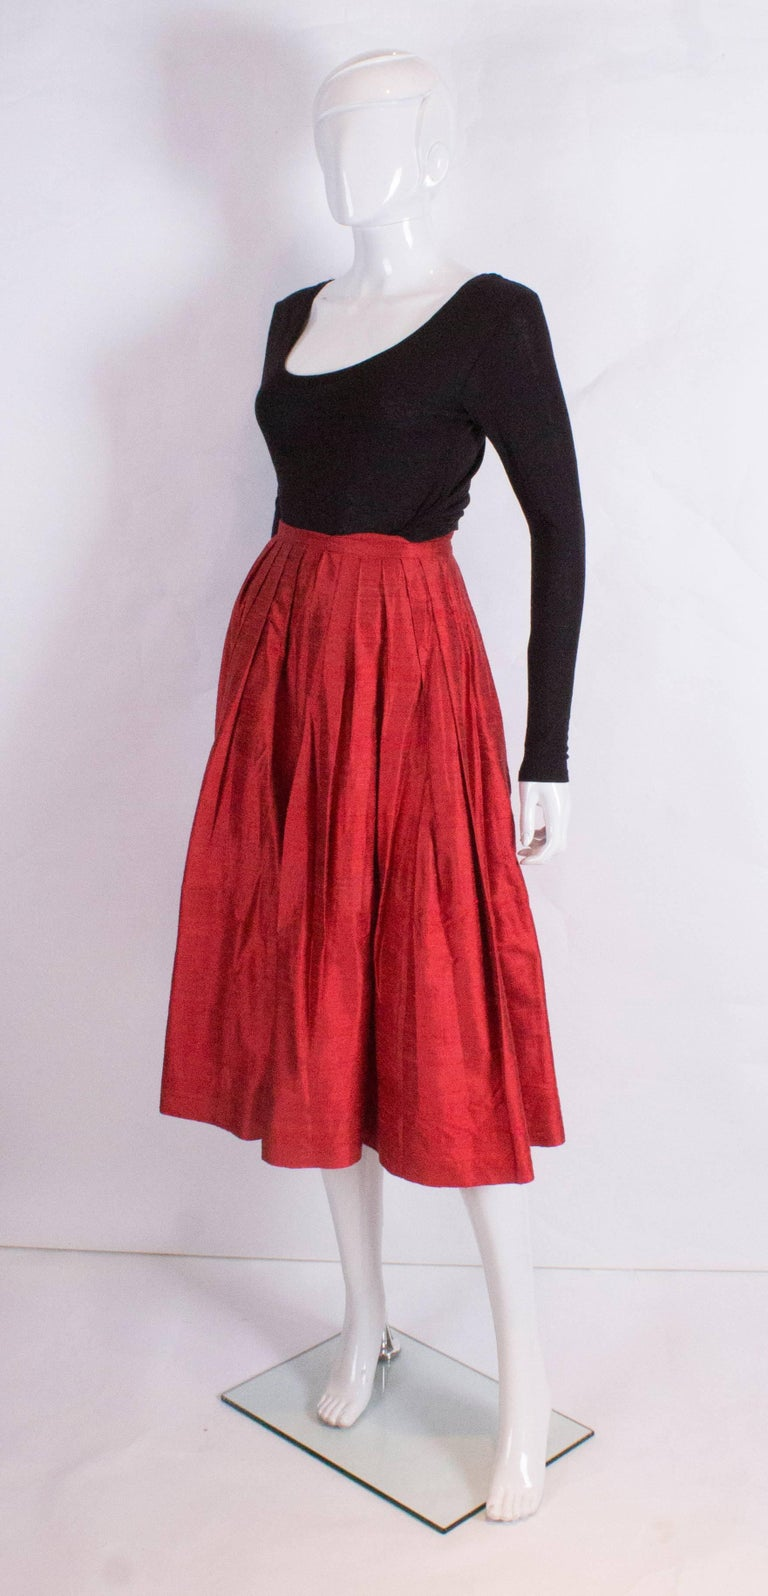 Caroline Charles Vintage Silk Red Skirt In Good Condition For Sale In London, GB